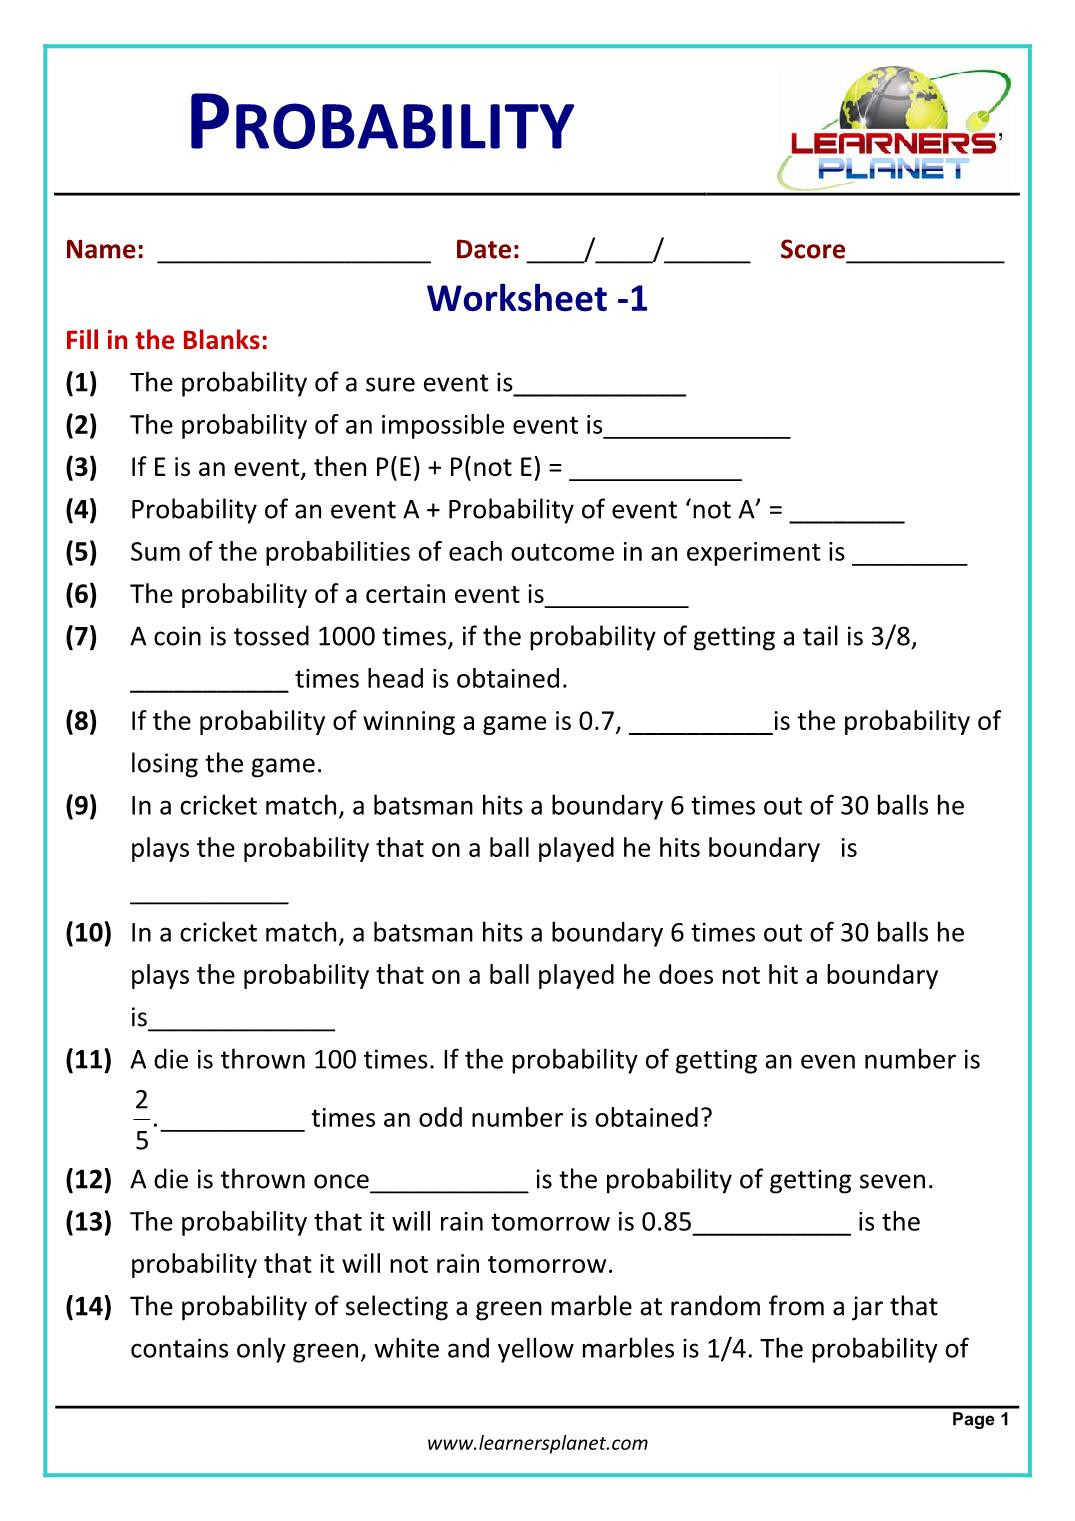 Probability Worksheet High School Division Games for 2nd Grade Physics Measurements and Units